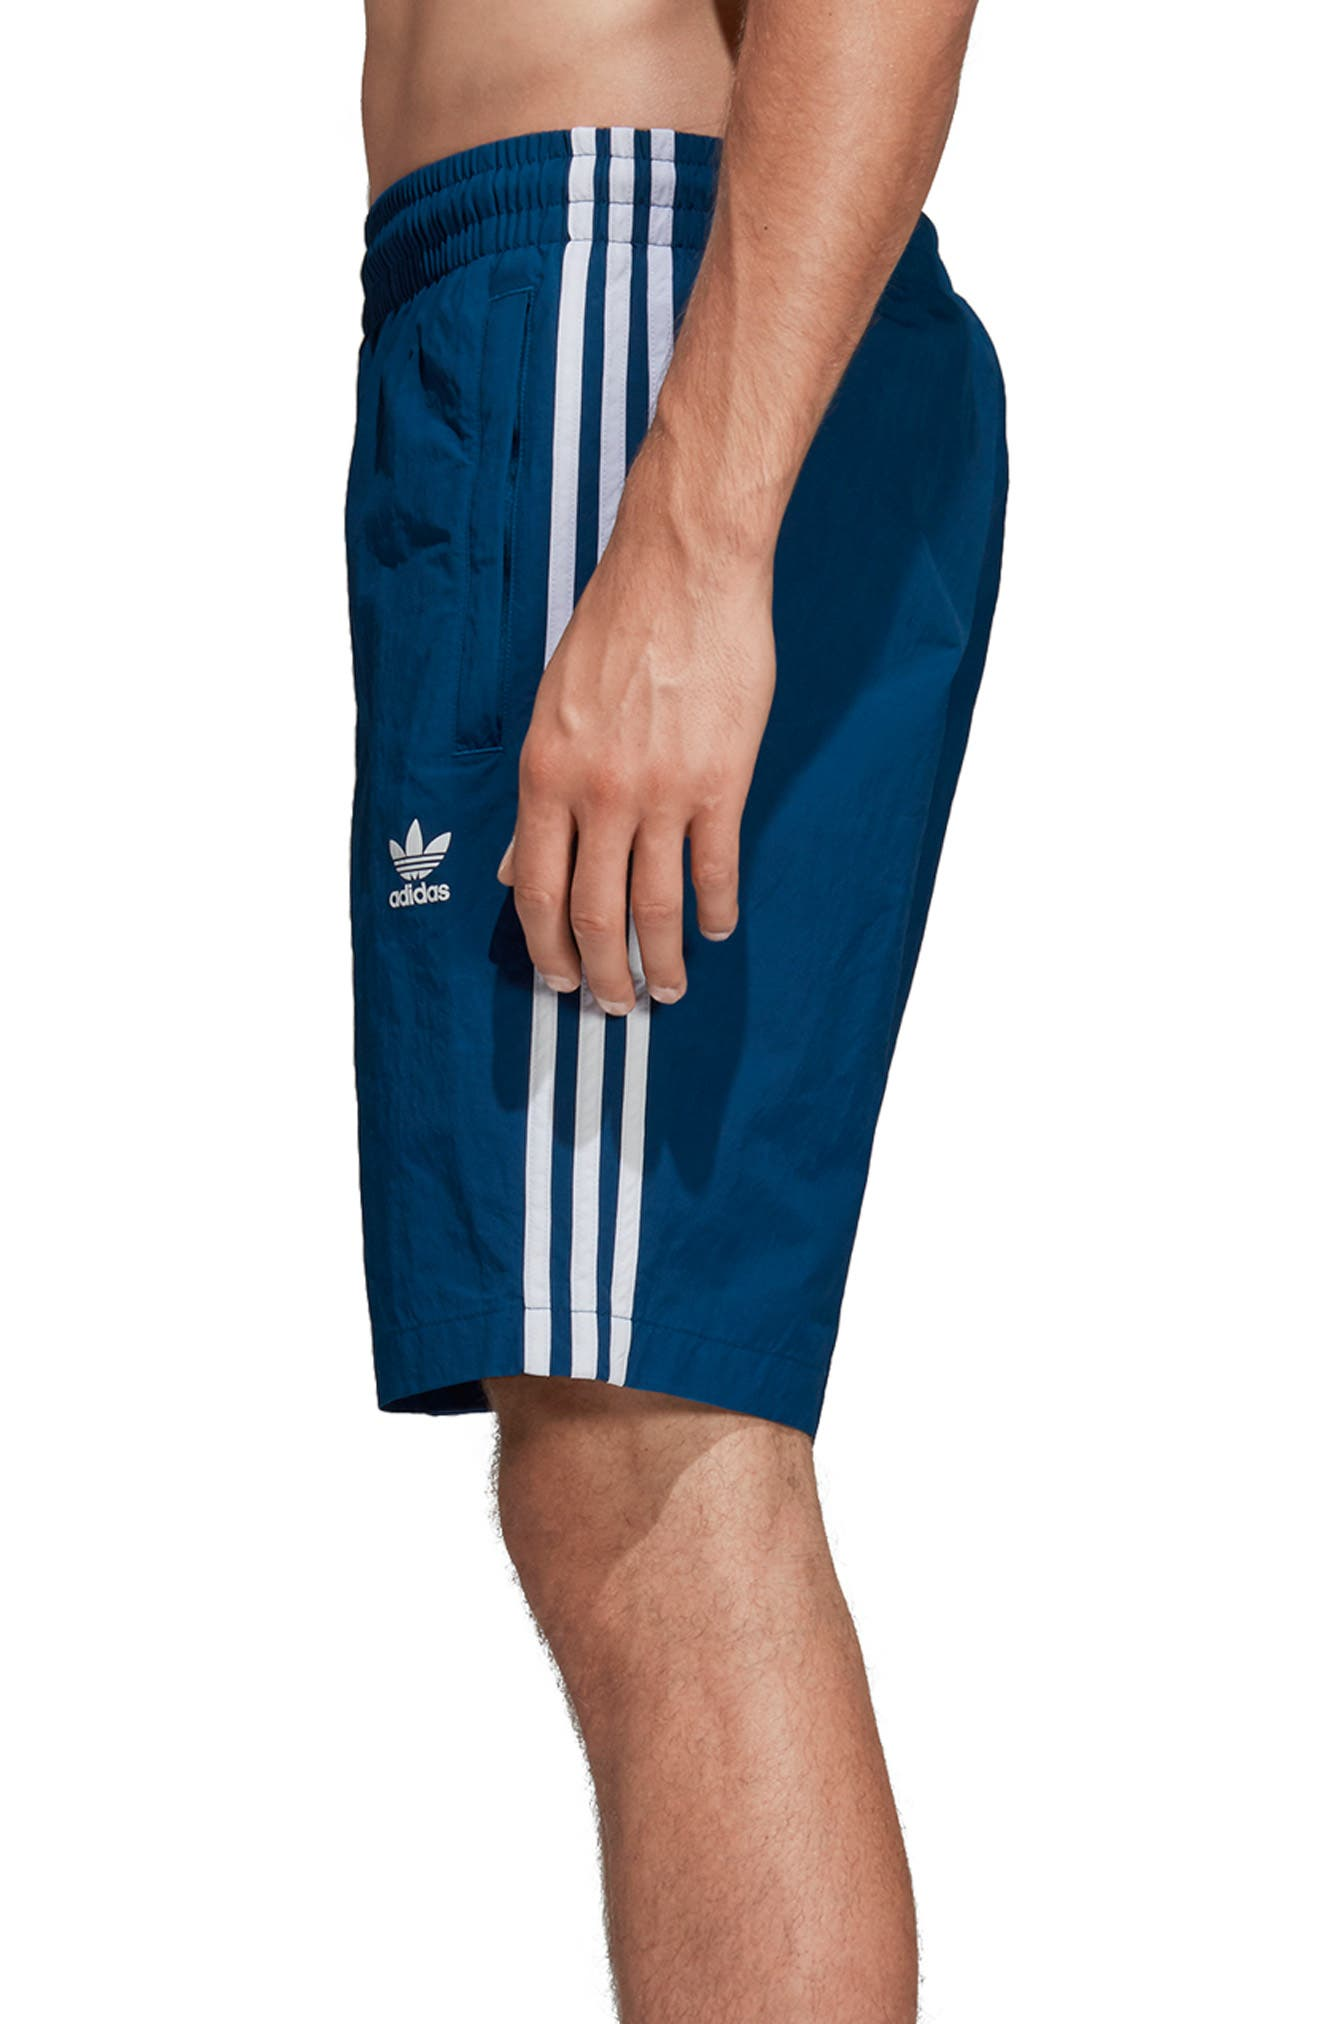 ADIDAS ORIGINALS, 3-Stripes Swim Trunks, Alternate thumbnail 3, color, LEGEND MARINE